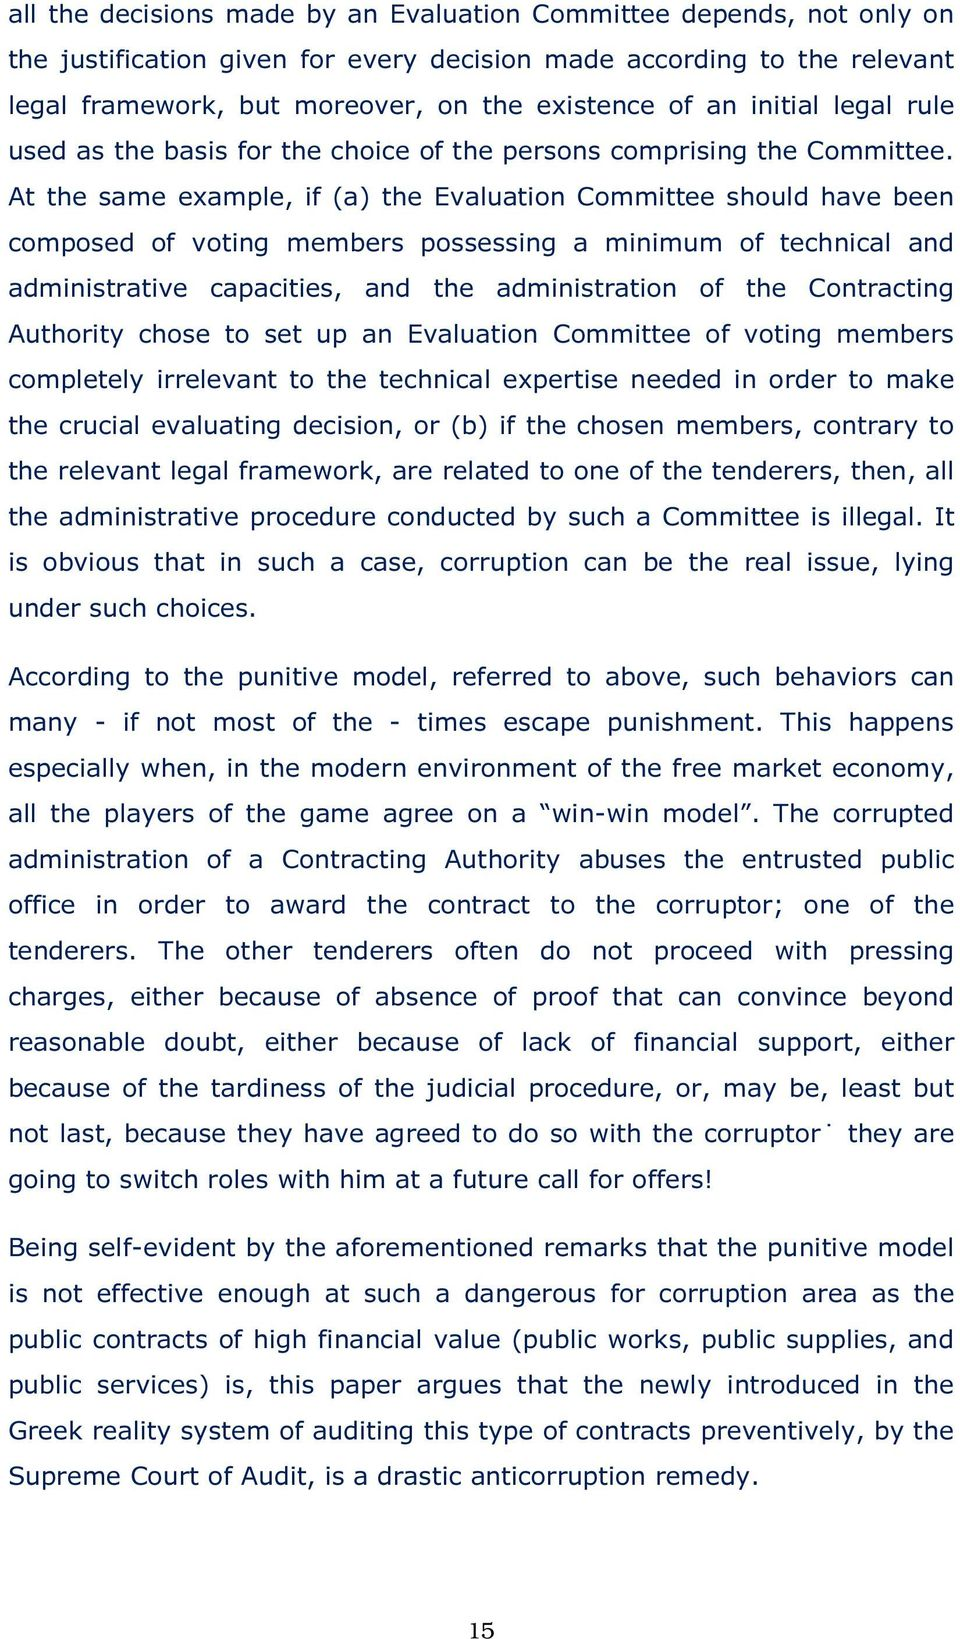 At the same example, if (a) the Evaluation Committee should have been composed of voting members possessing a minimum of technical and administrative capacities, and the administration of the